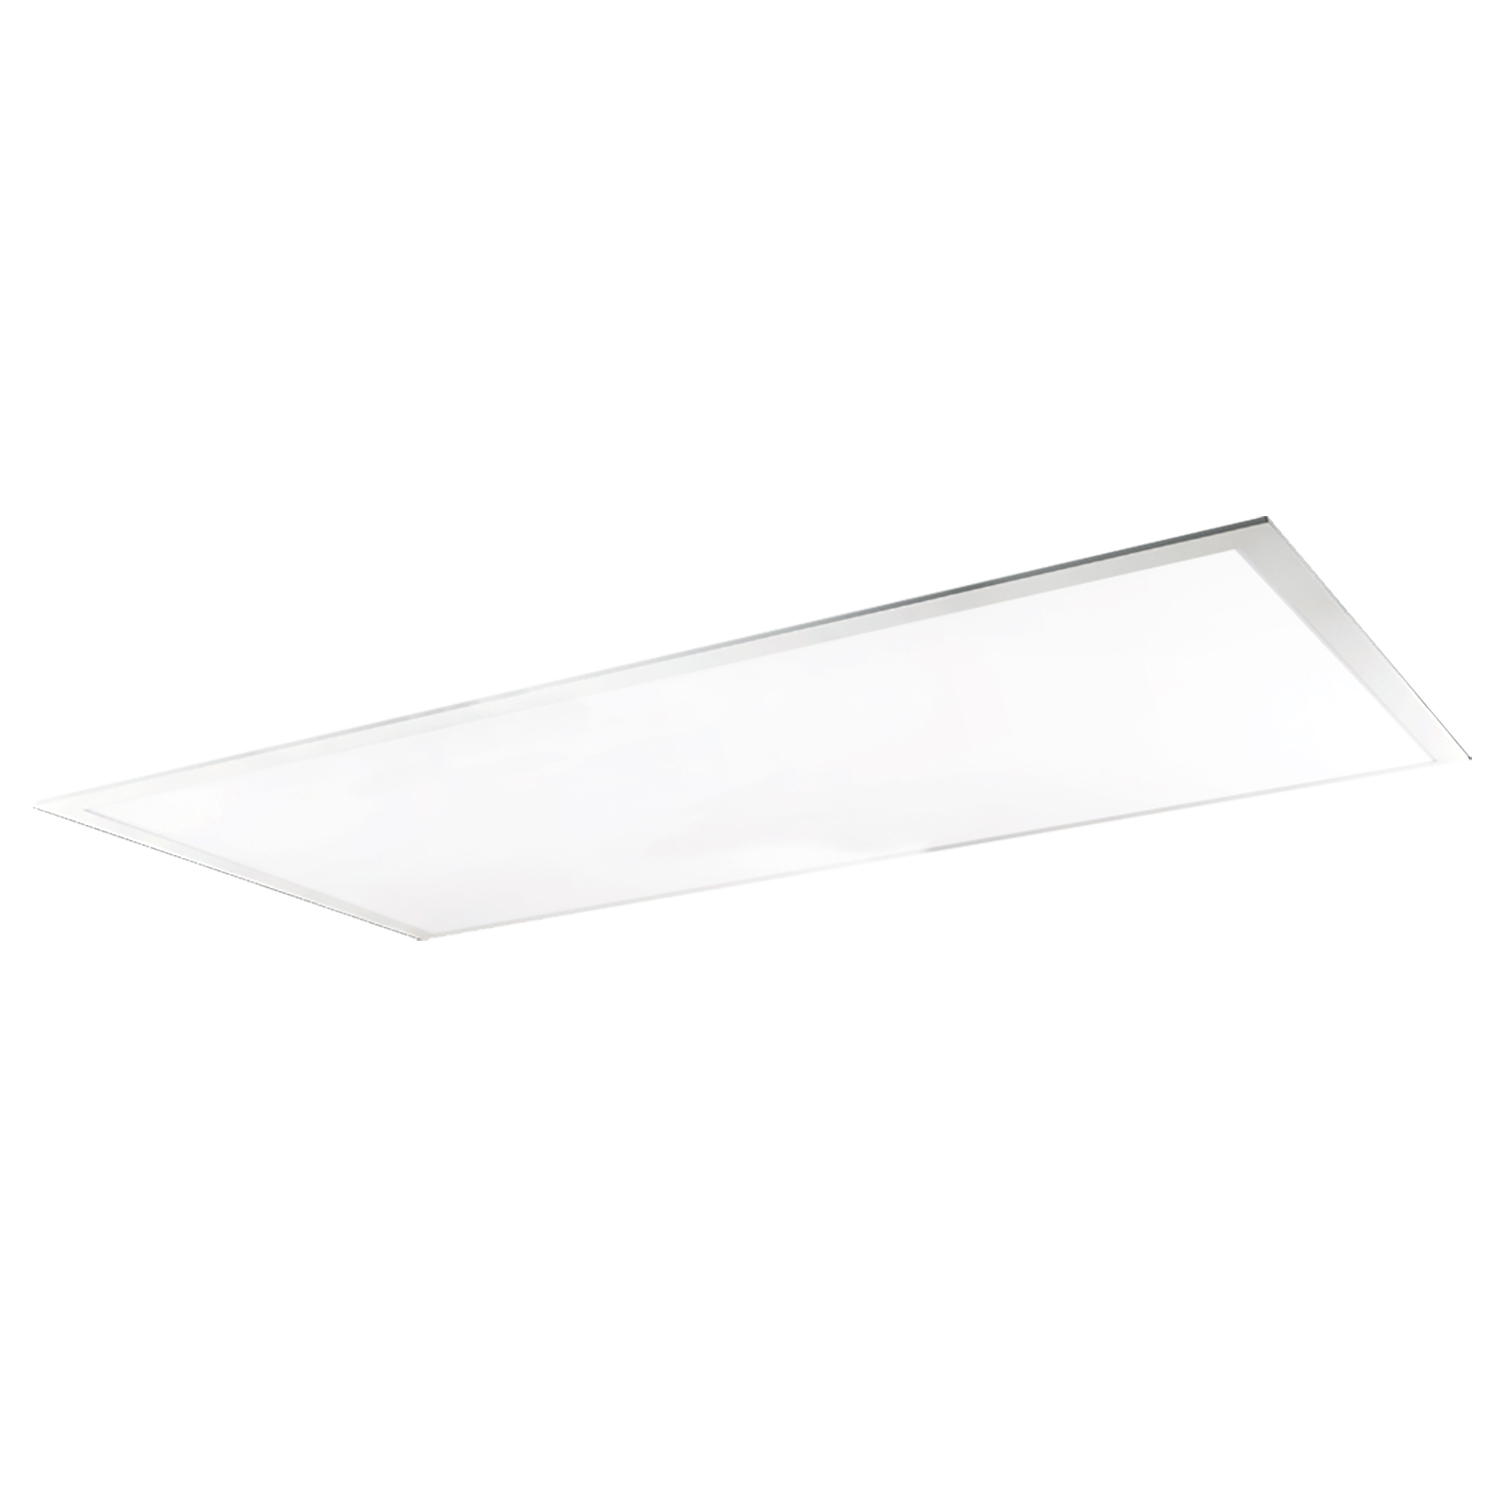 14EPL40/850/LED 81984 ProLED EDGE-LIT FLAT PANEL 1X4 40W 5000K 0-10V DIMMABLE